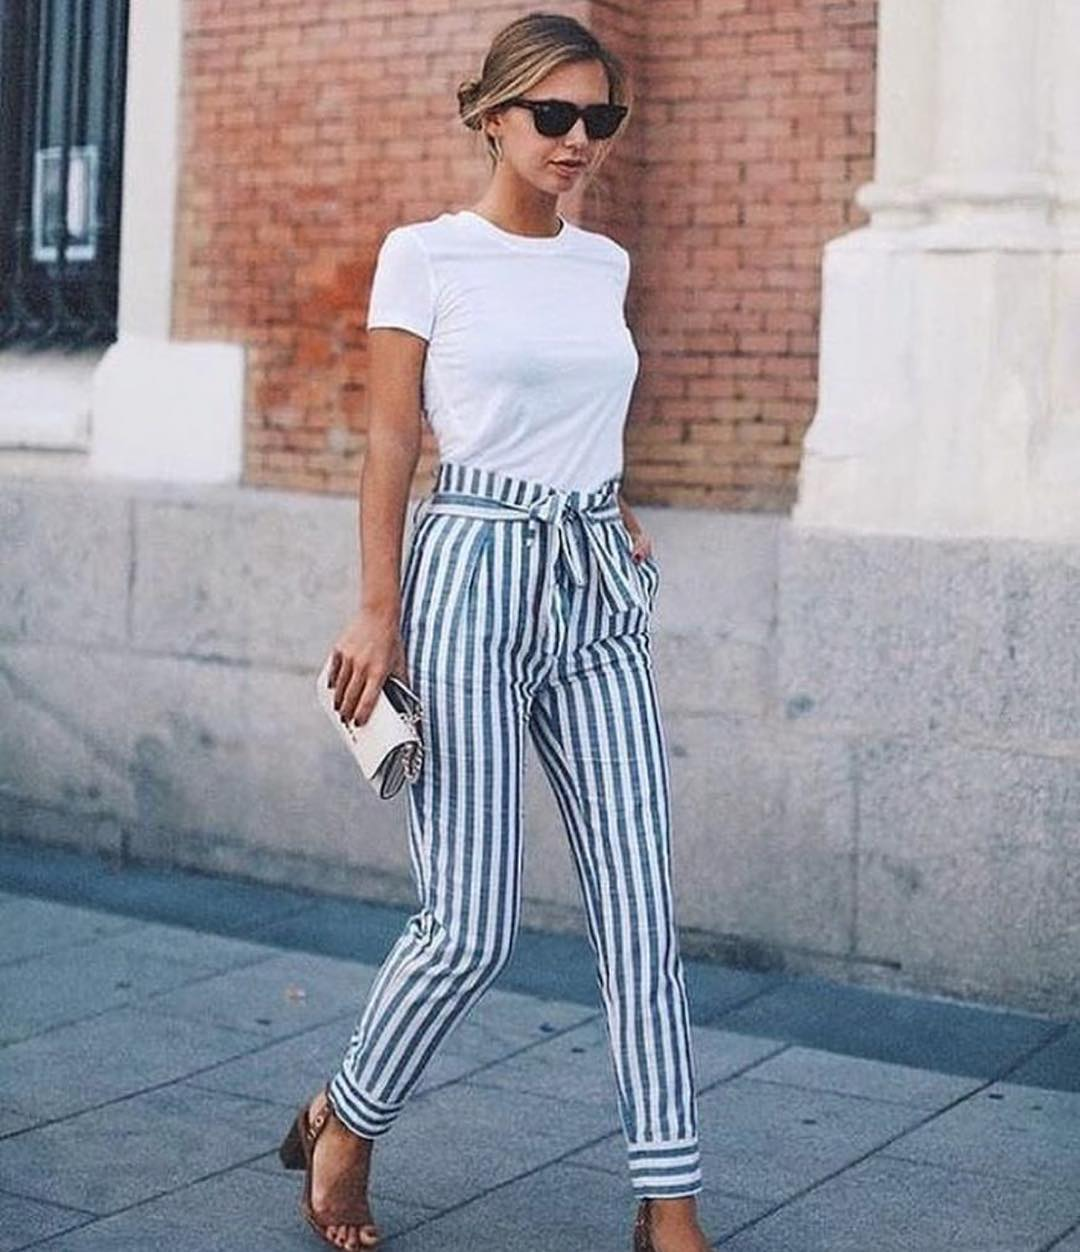 White Tee And Gathered High Rise Pinstripe Pants With Block Heel Sandals 2019